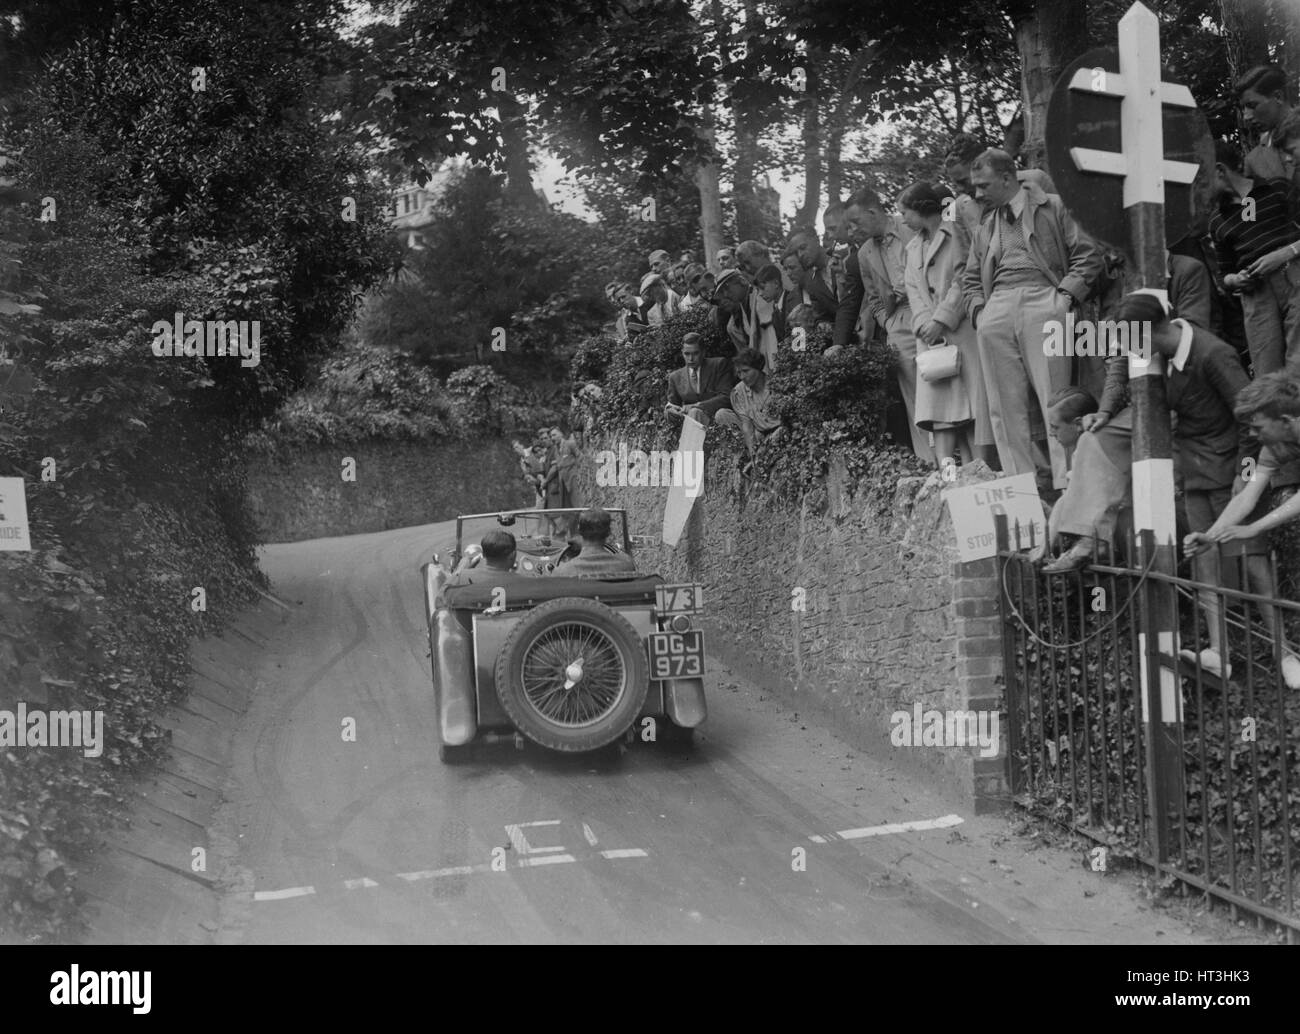 MG TA of CG Gibbs competing in the MCC Torquay Rally, 1938. Artist: Bill Brunell. - Stock Image